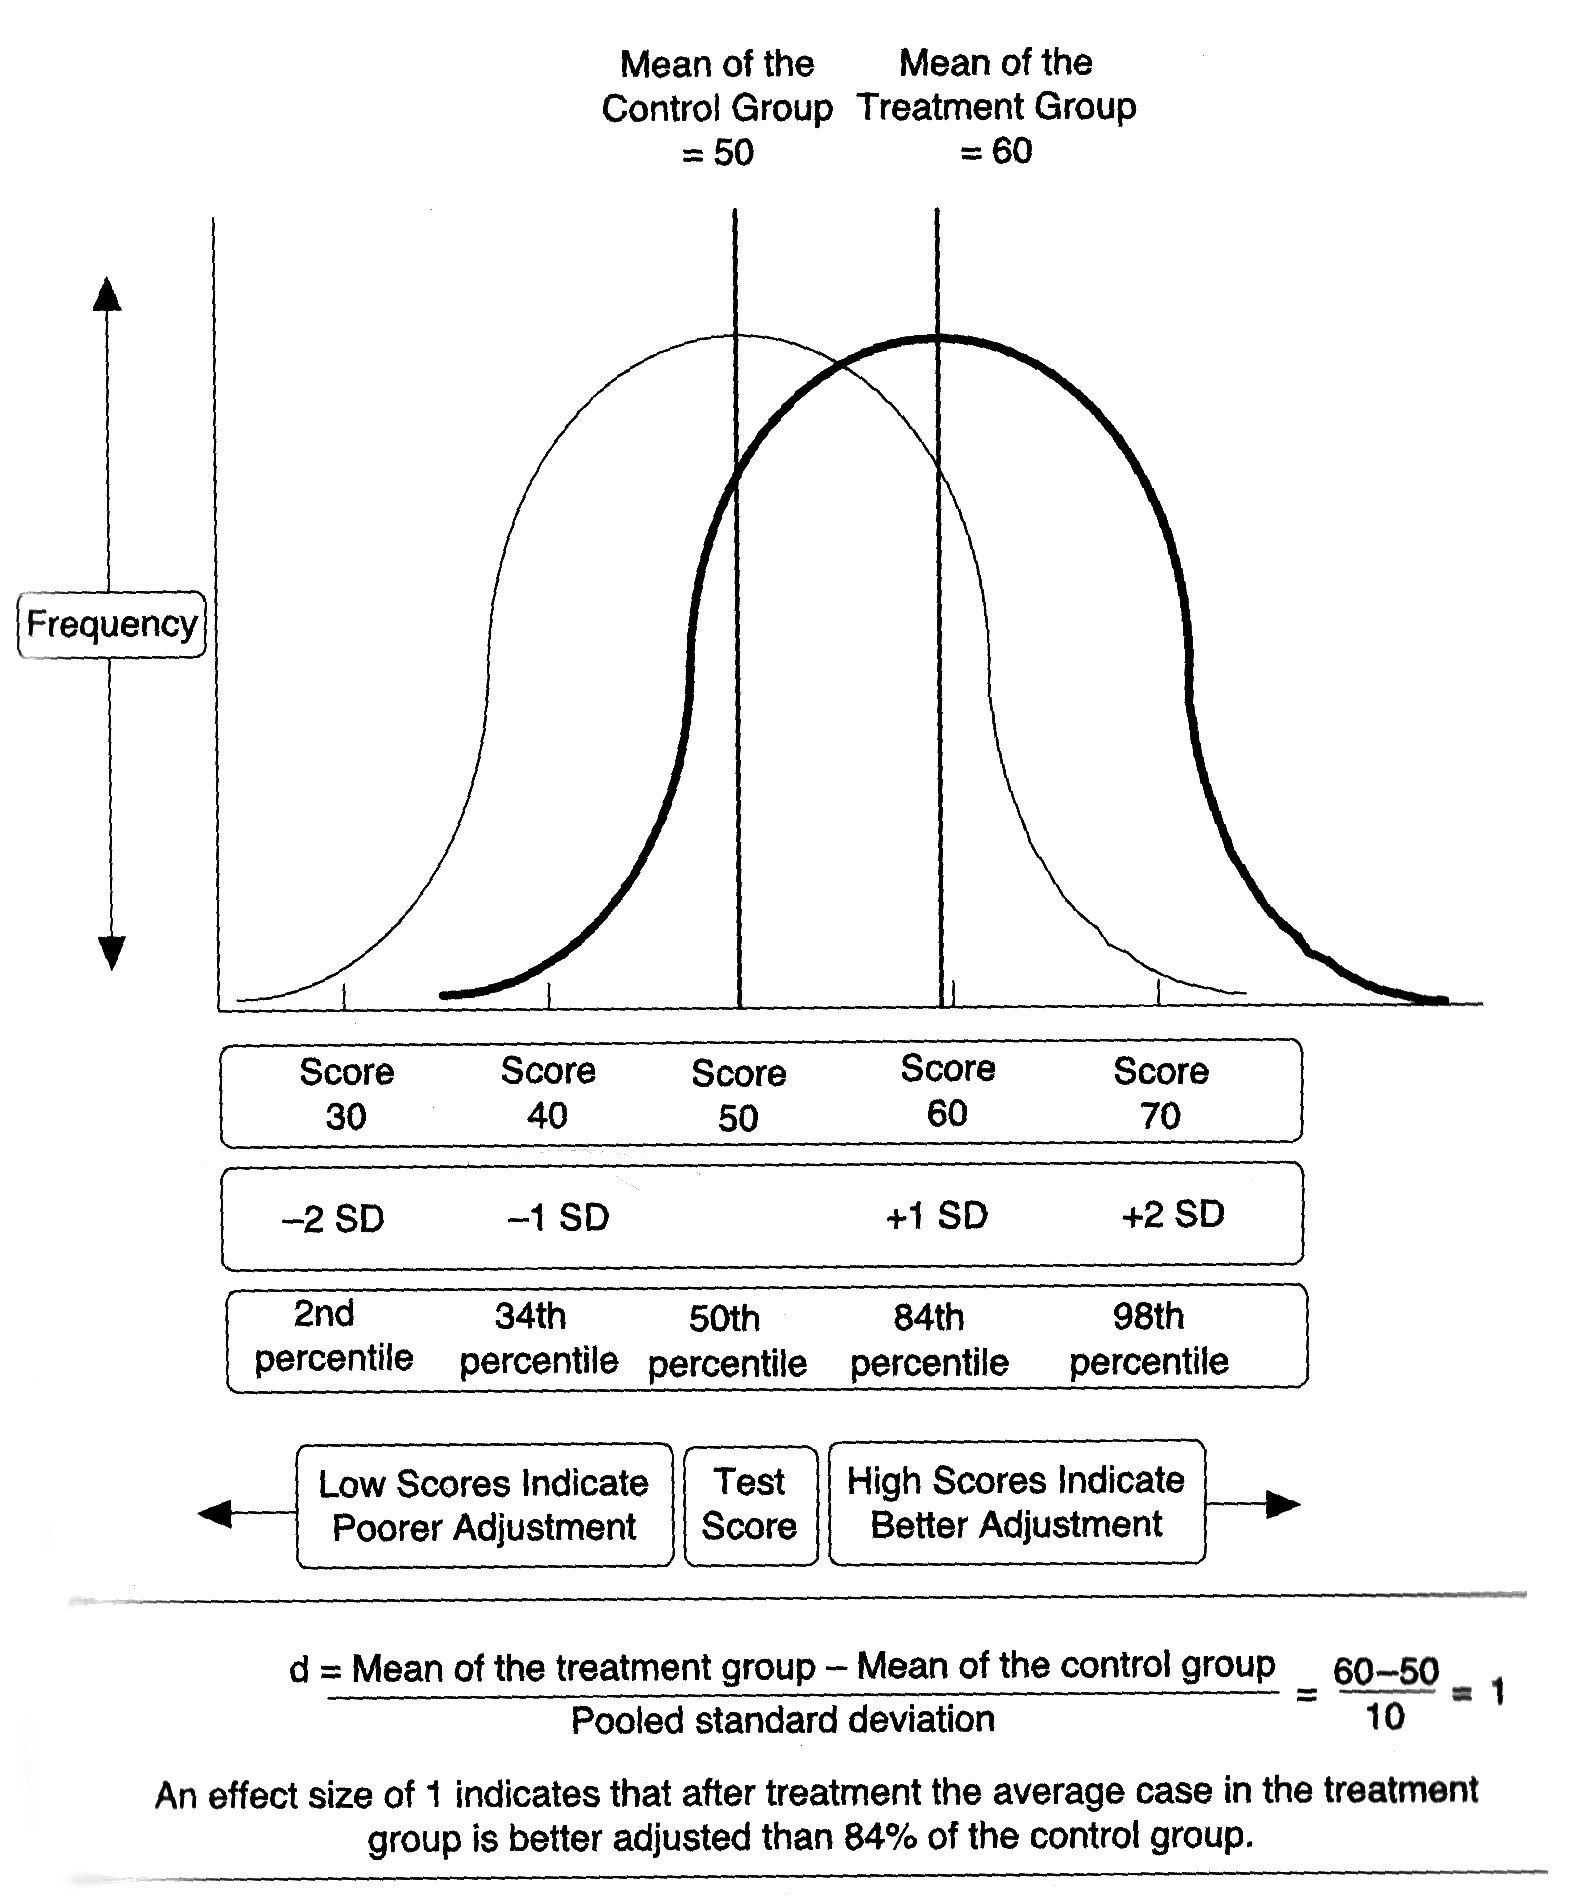 FIGURE A - EFFECT SIZES